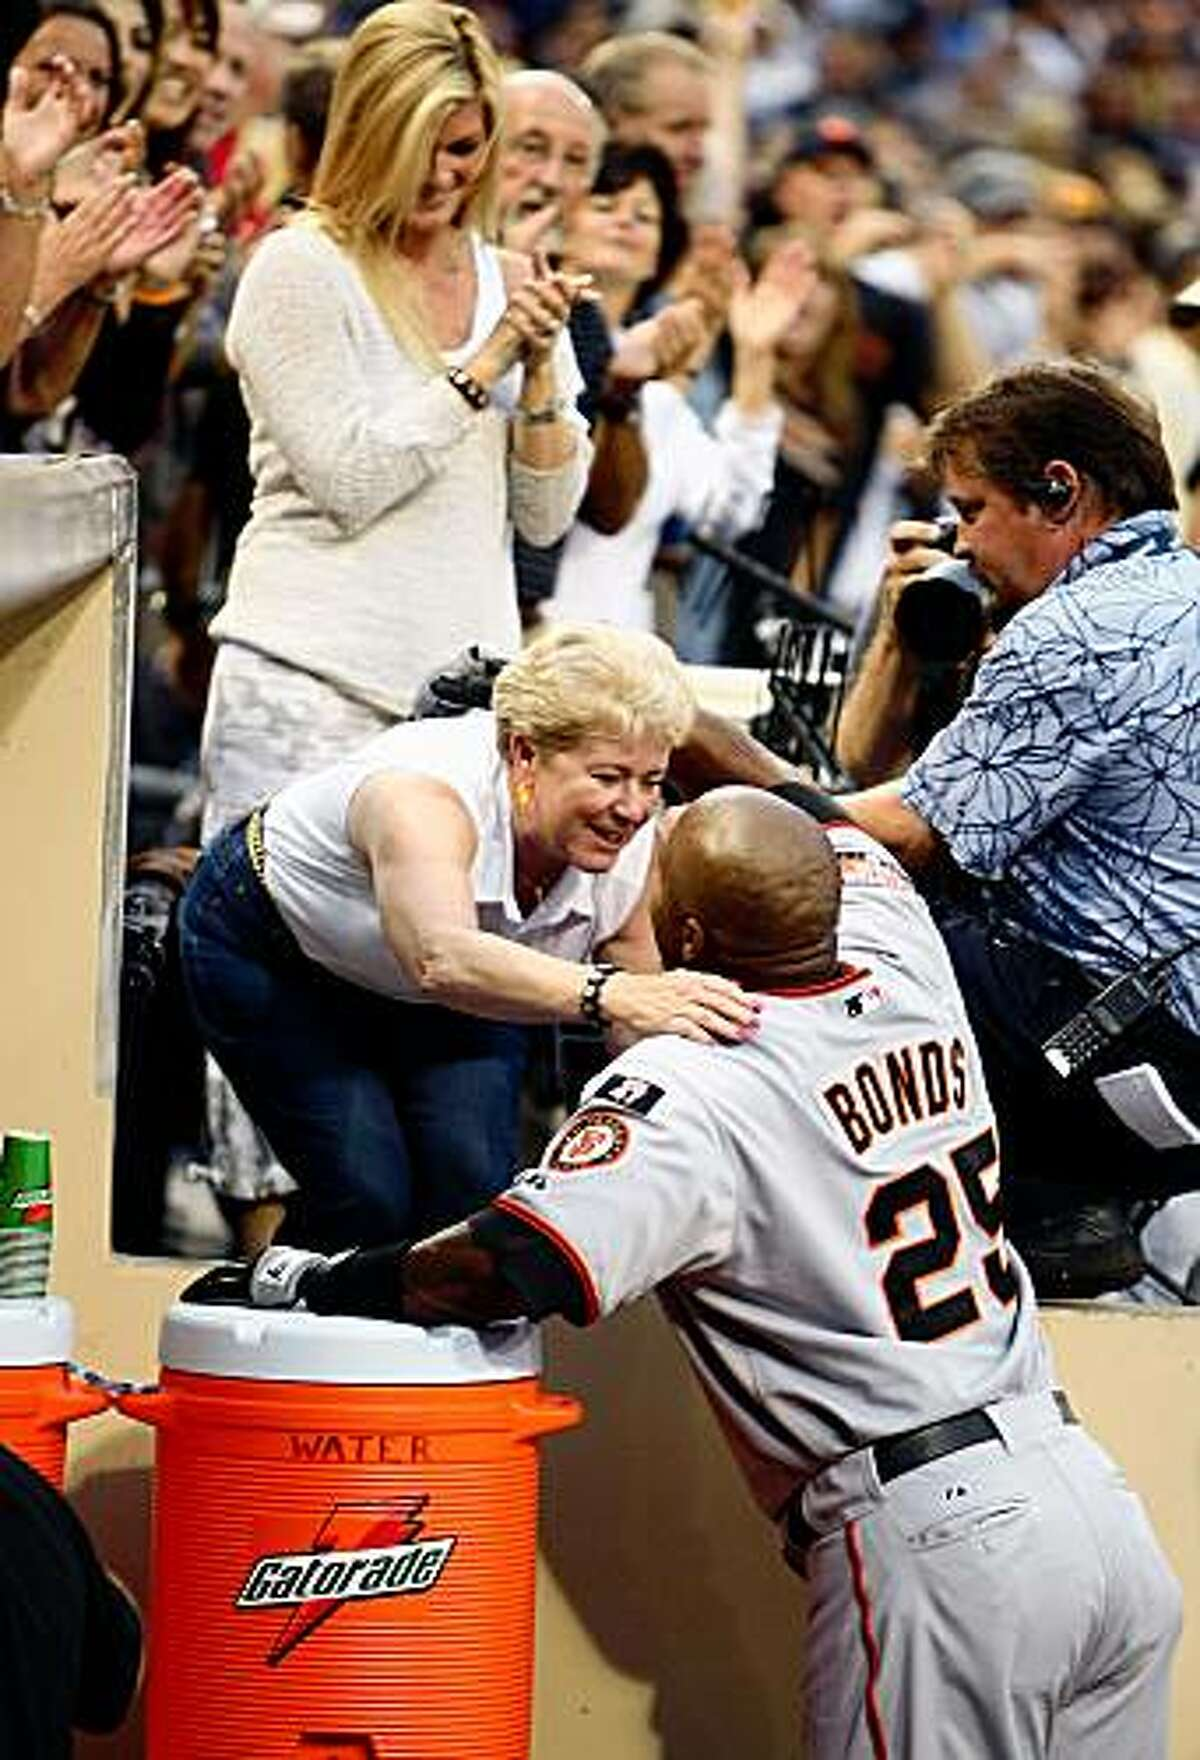 SAN DIEGO - AUGUST 04: Barry Bonds #25 of the San Francisco Giants goes to the far end of the dugout to hug Sue Burns, the wife of late Giants ownership partner Harmon Burns, after hitting career home run #755 in the second inning against the San Diego Padres during a MLB game at Petco Park August 4, 2007 in San Diego, California. Bonds tied Hank Aaron's career all time home run record. (Photo by Donald Miralle/Getty Images)